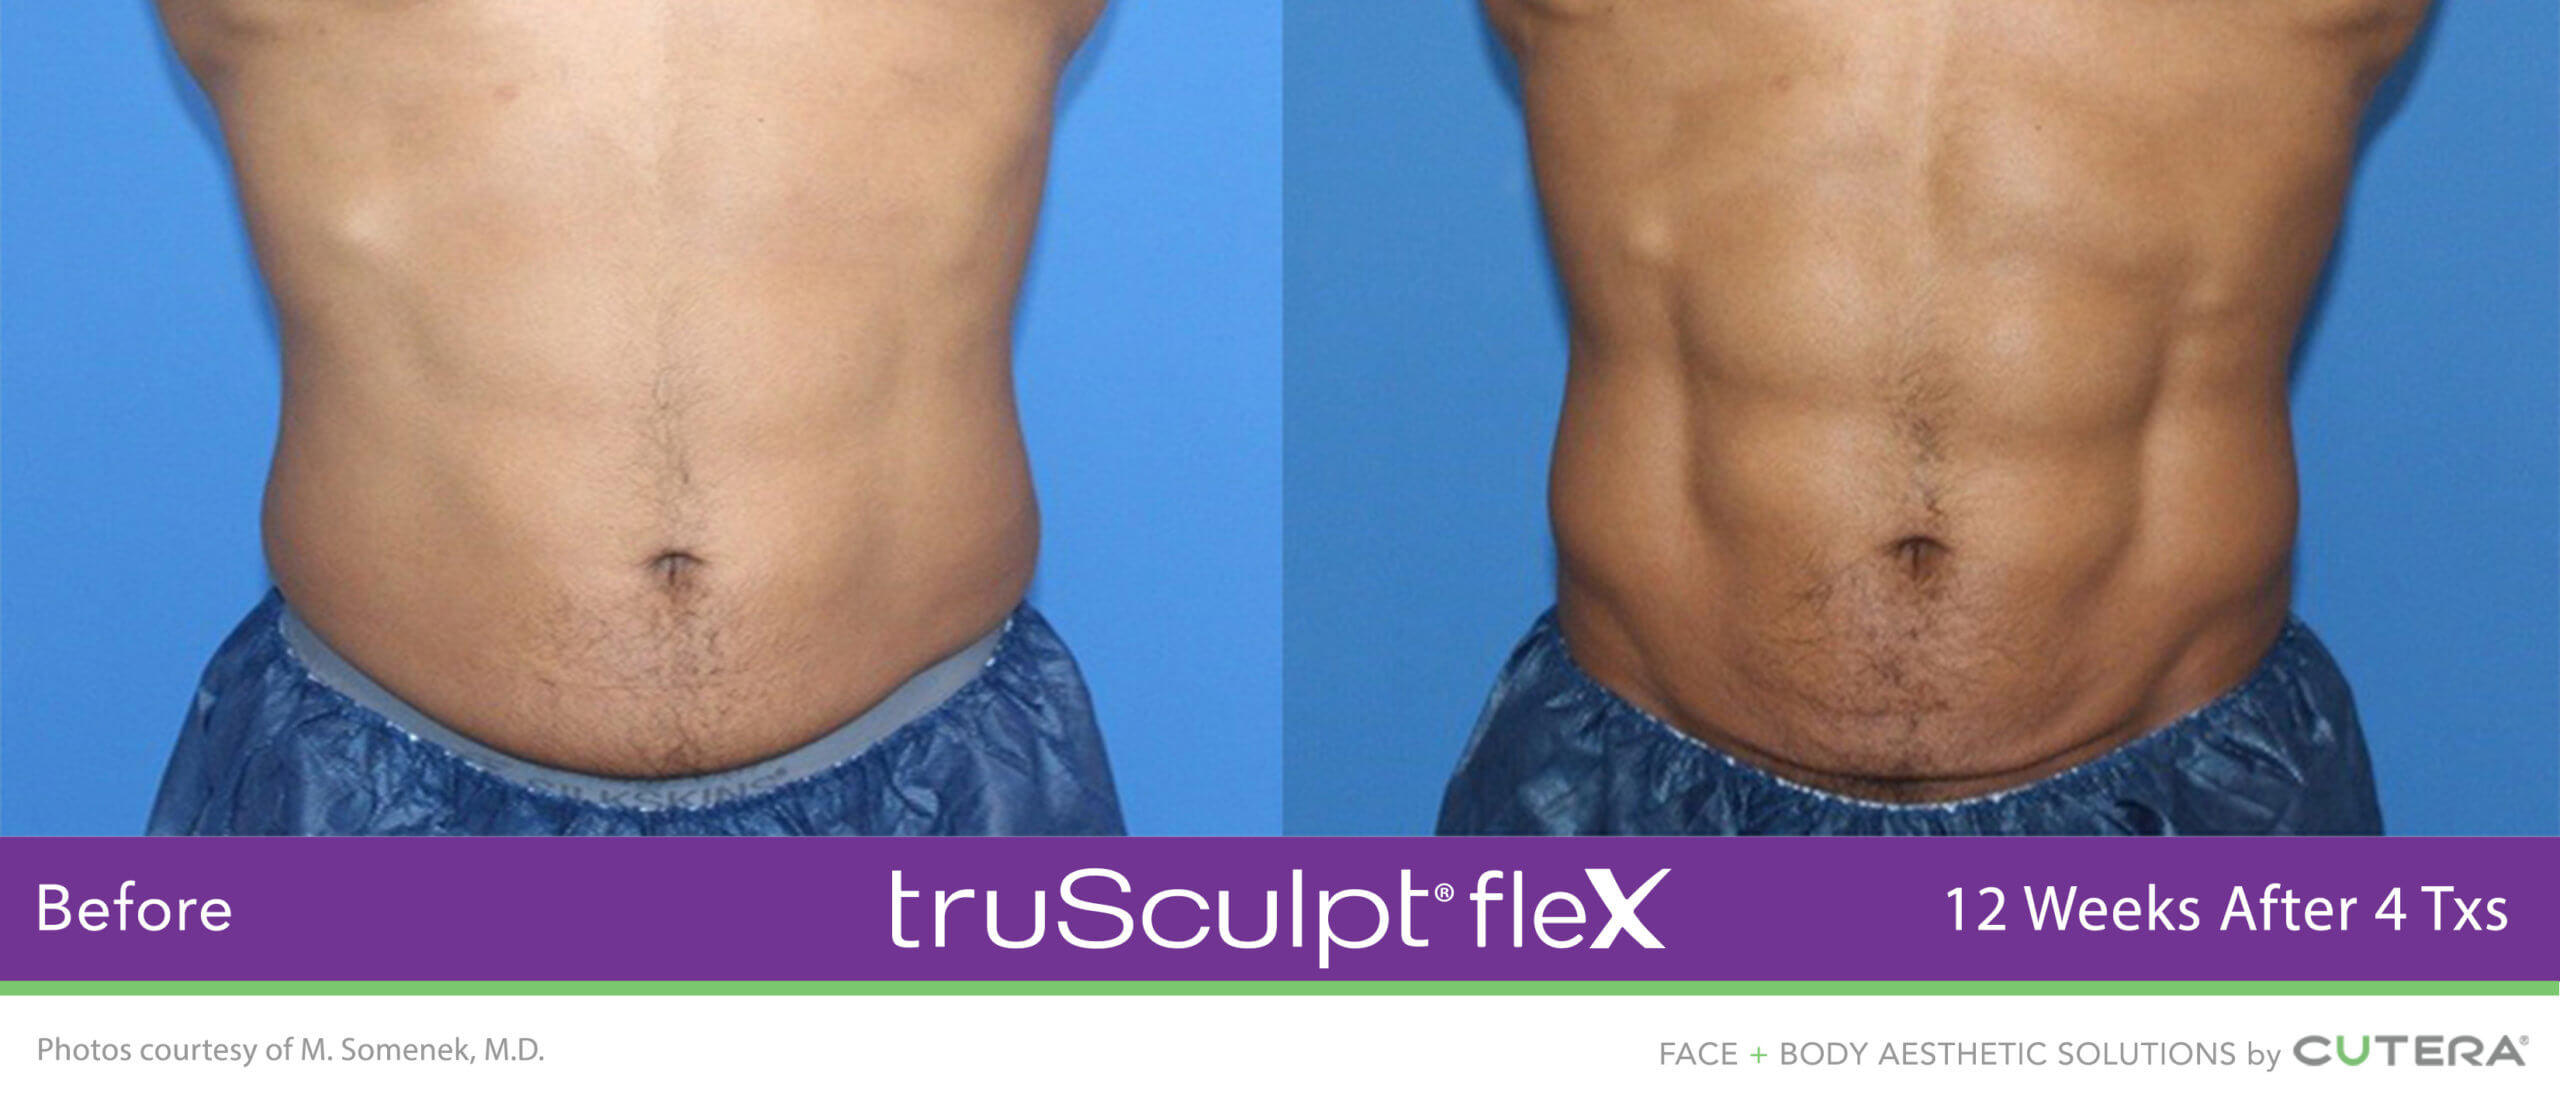 Muscle sculpting before and after on the abdomen and flanks using the truSculpt fleX